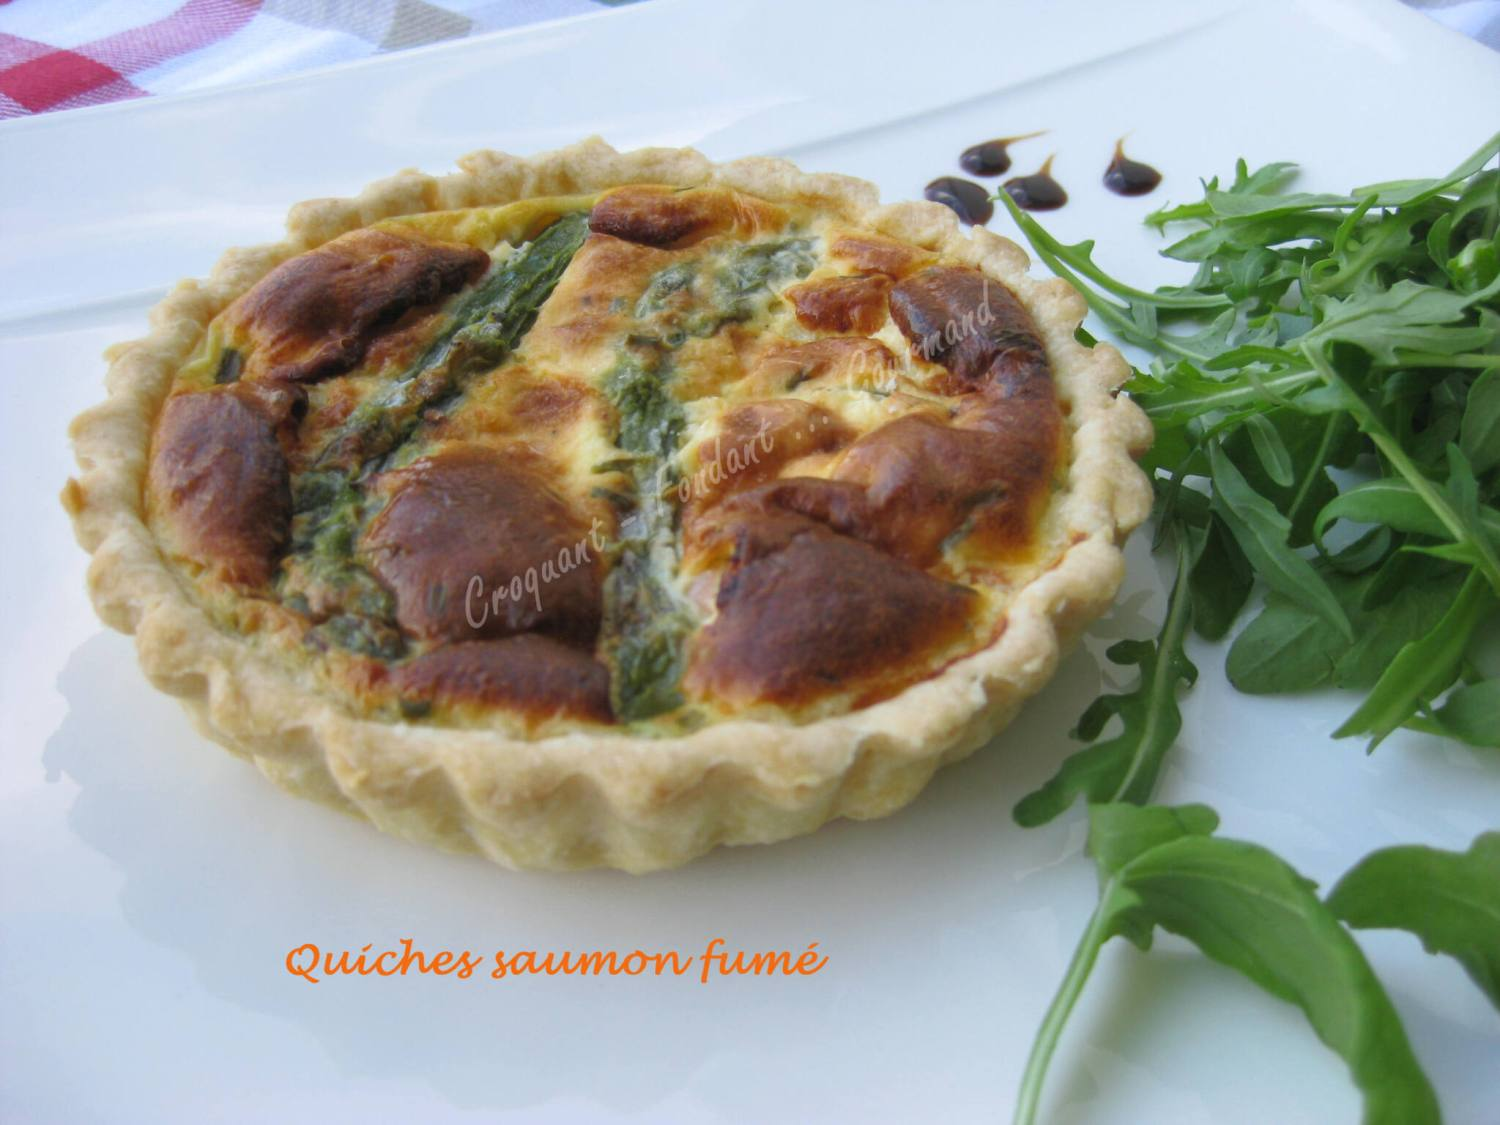 Quiches saumon fumé IMG_6296_36573